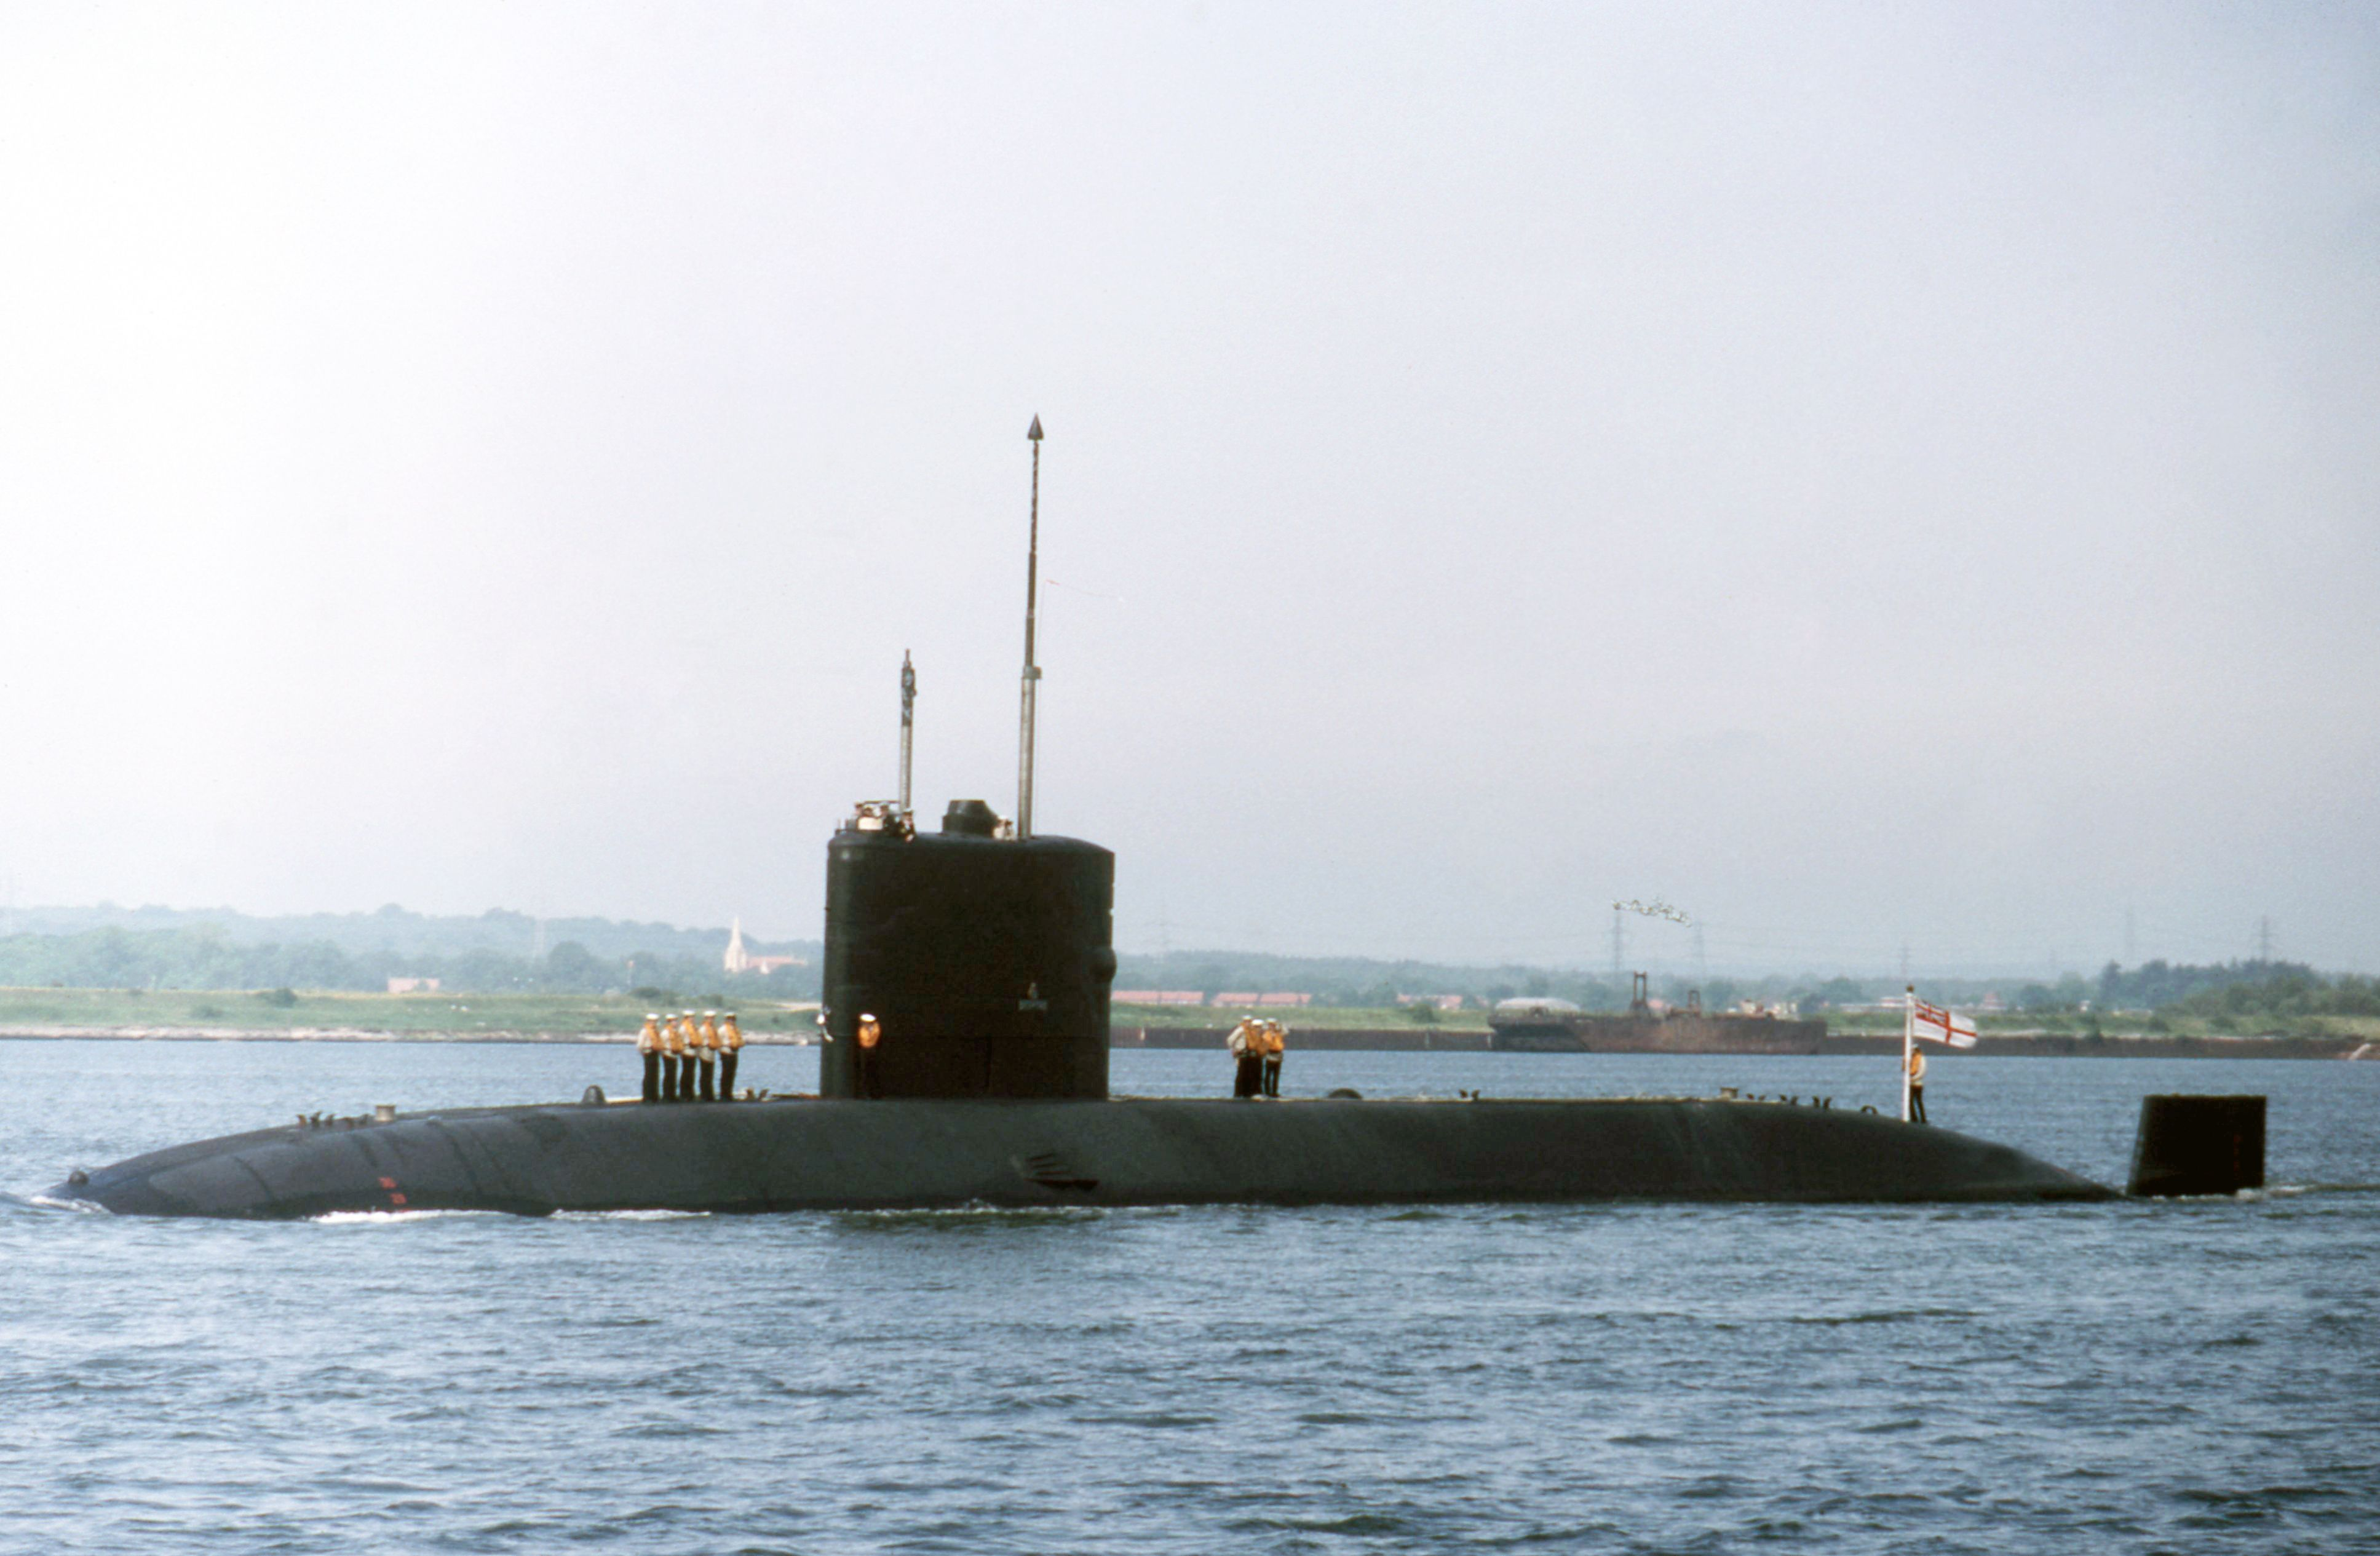 the fifth hms sceptre is a swiftsure-class submarine built